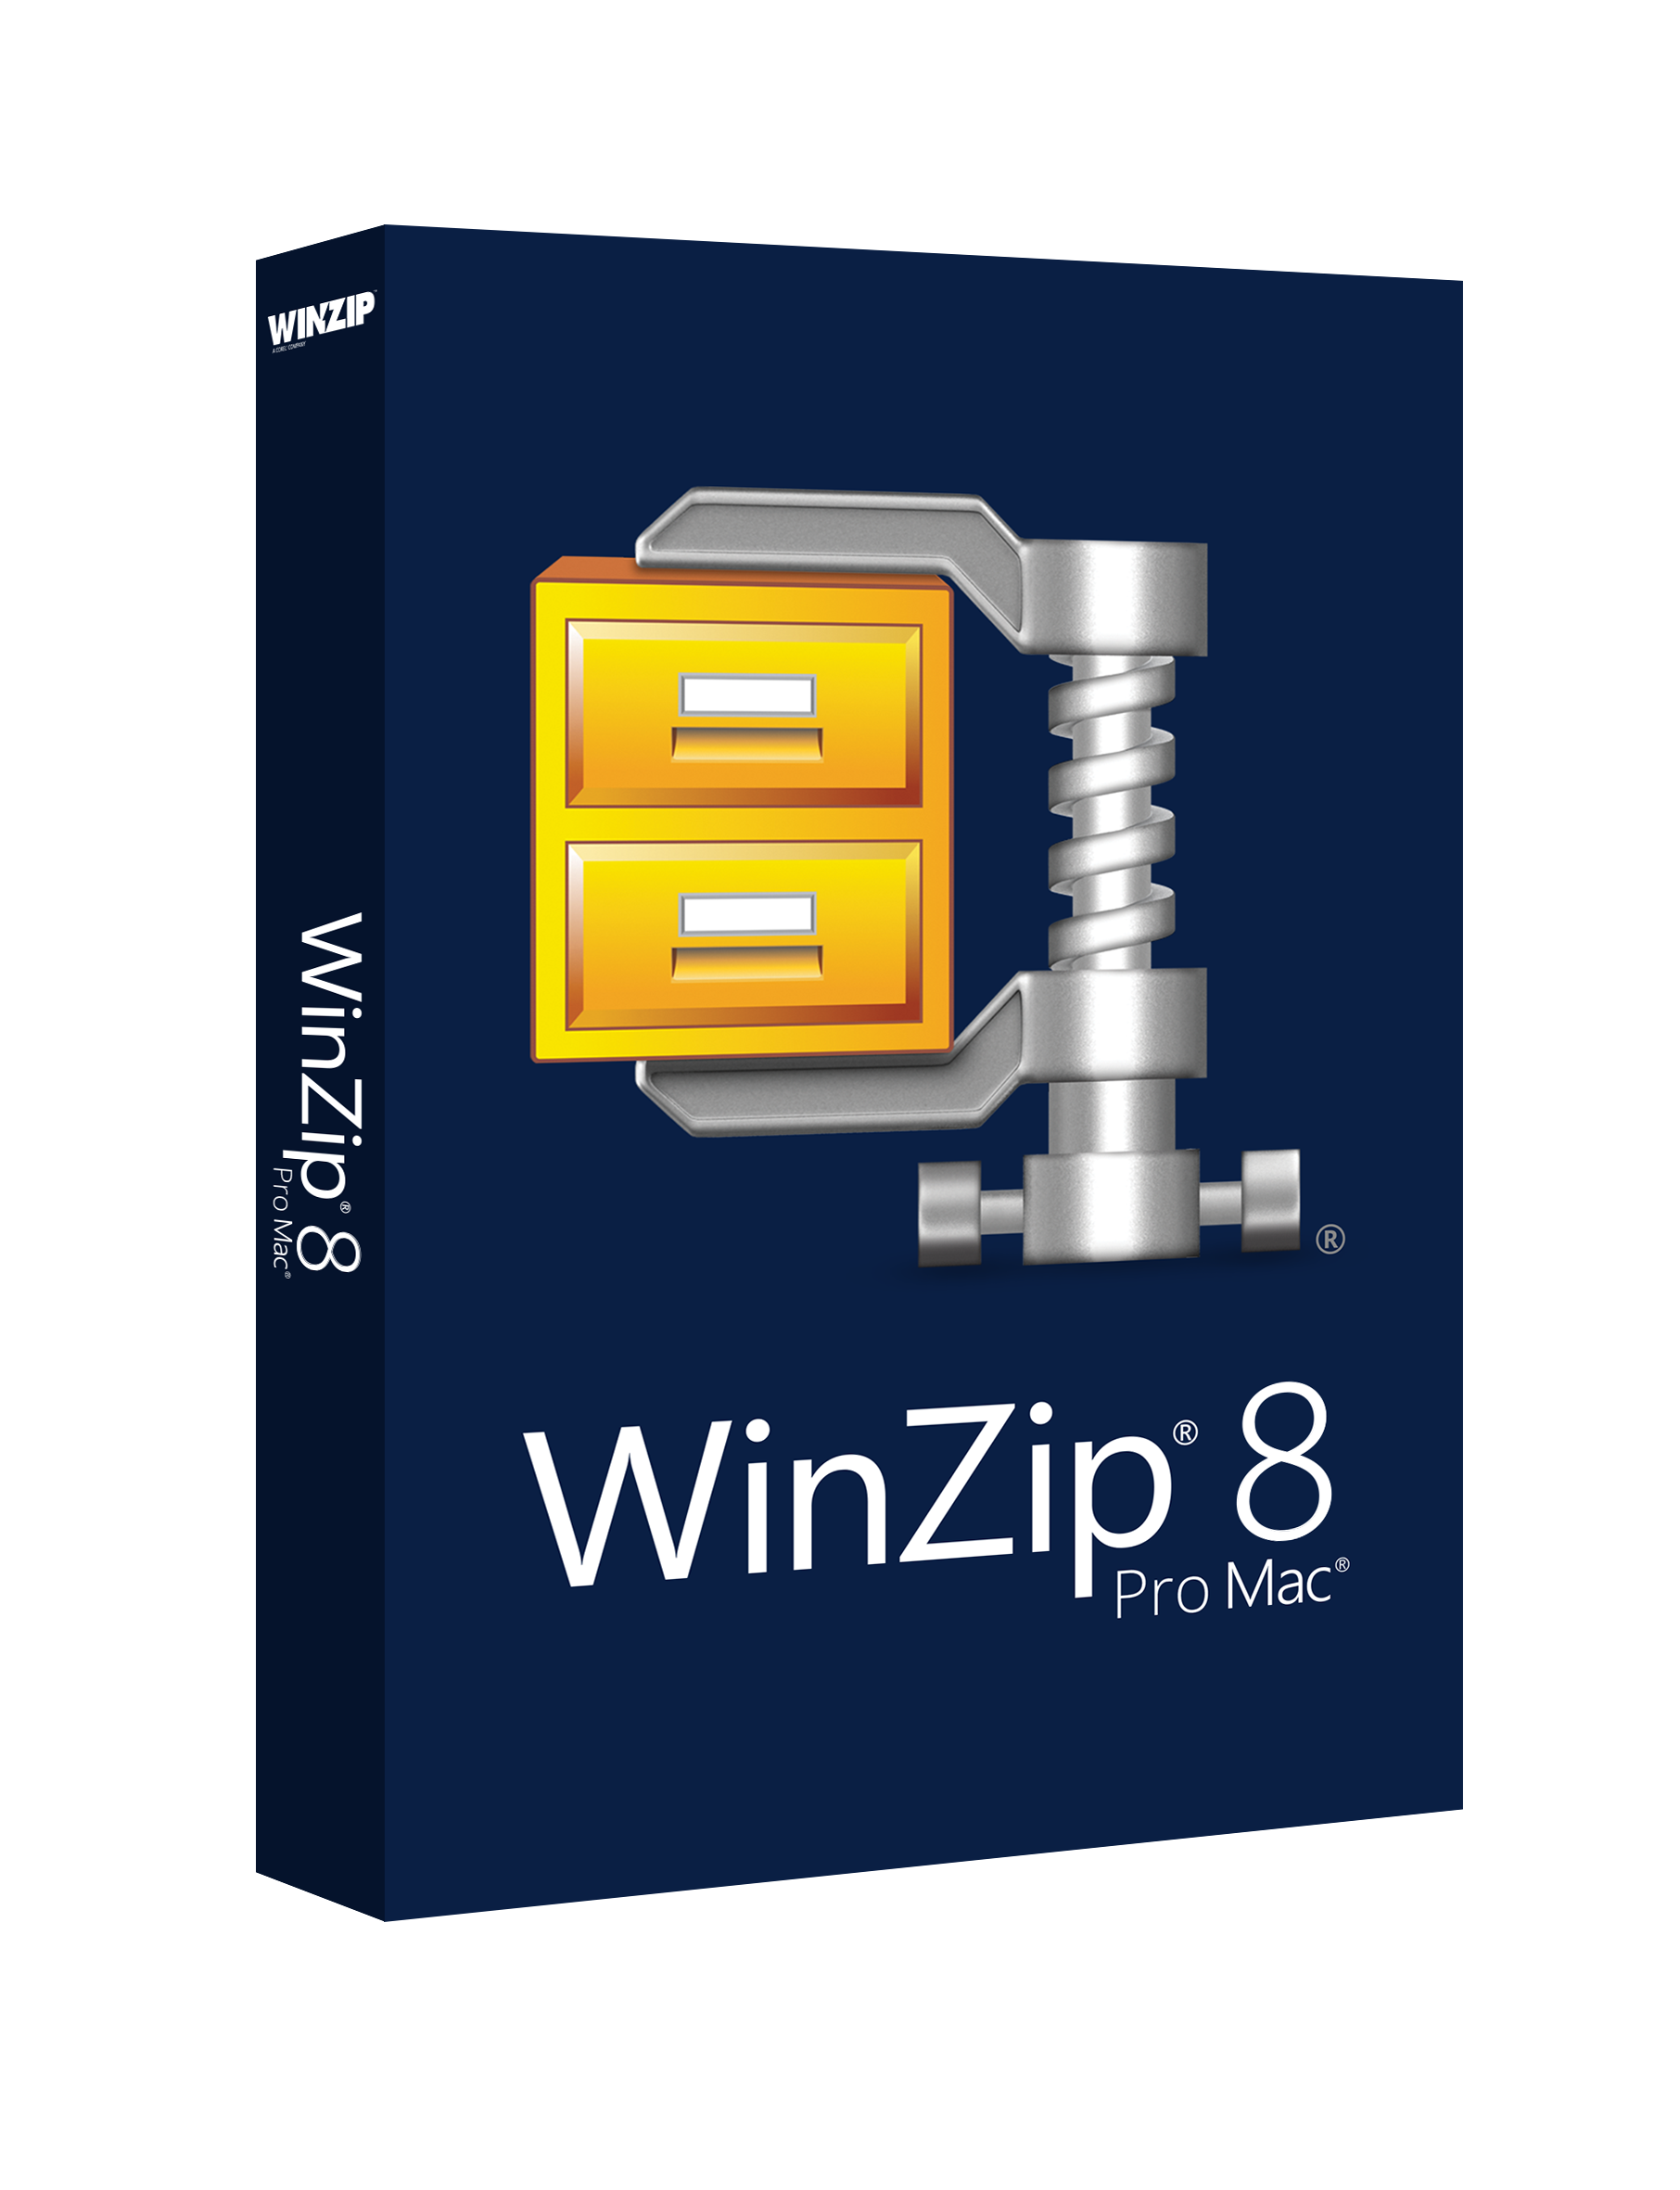 WinZip Mac 8 Pro Boosts Productivity for Filesharing and Backup